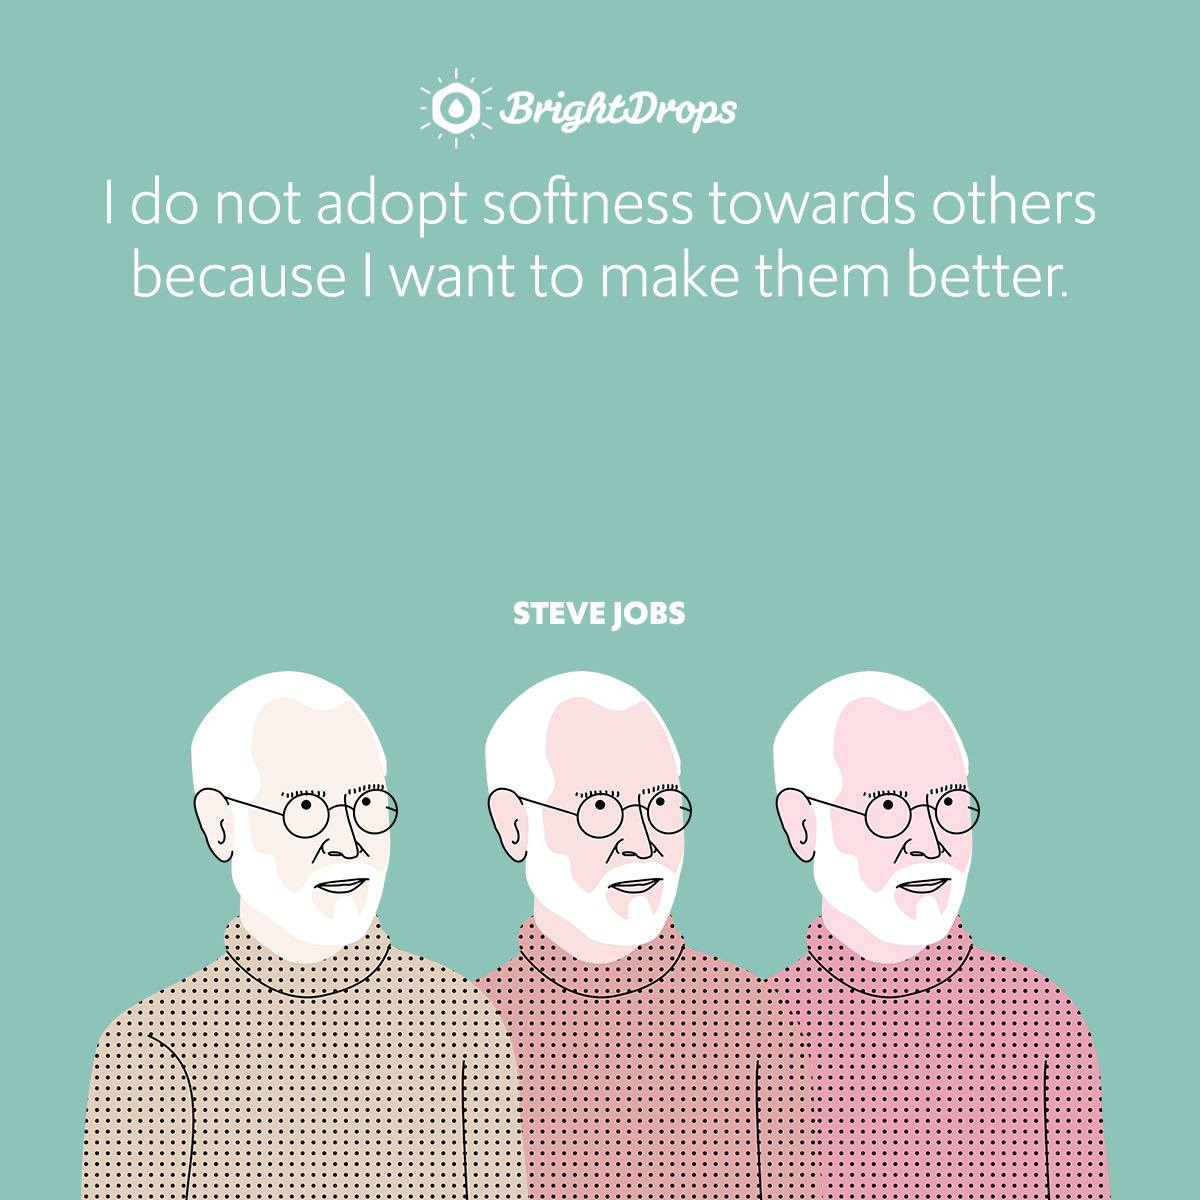 I do not adopt softness towards others because I want to make them better.